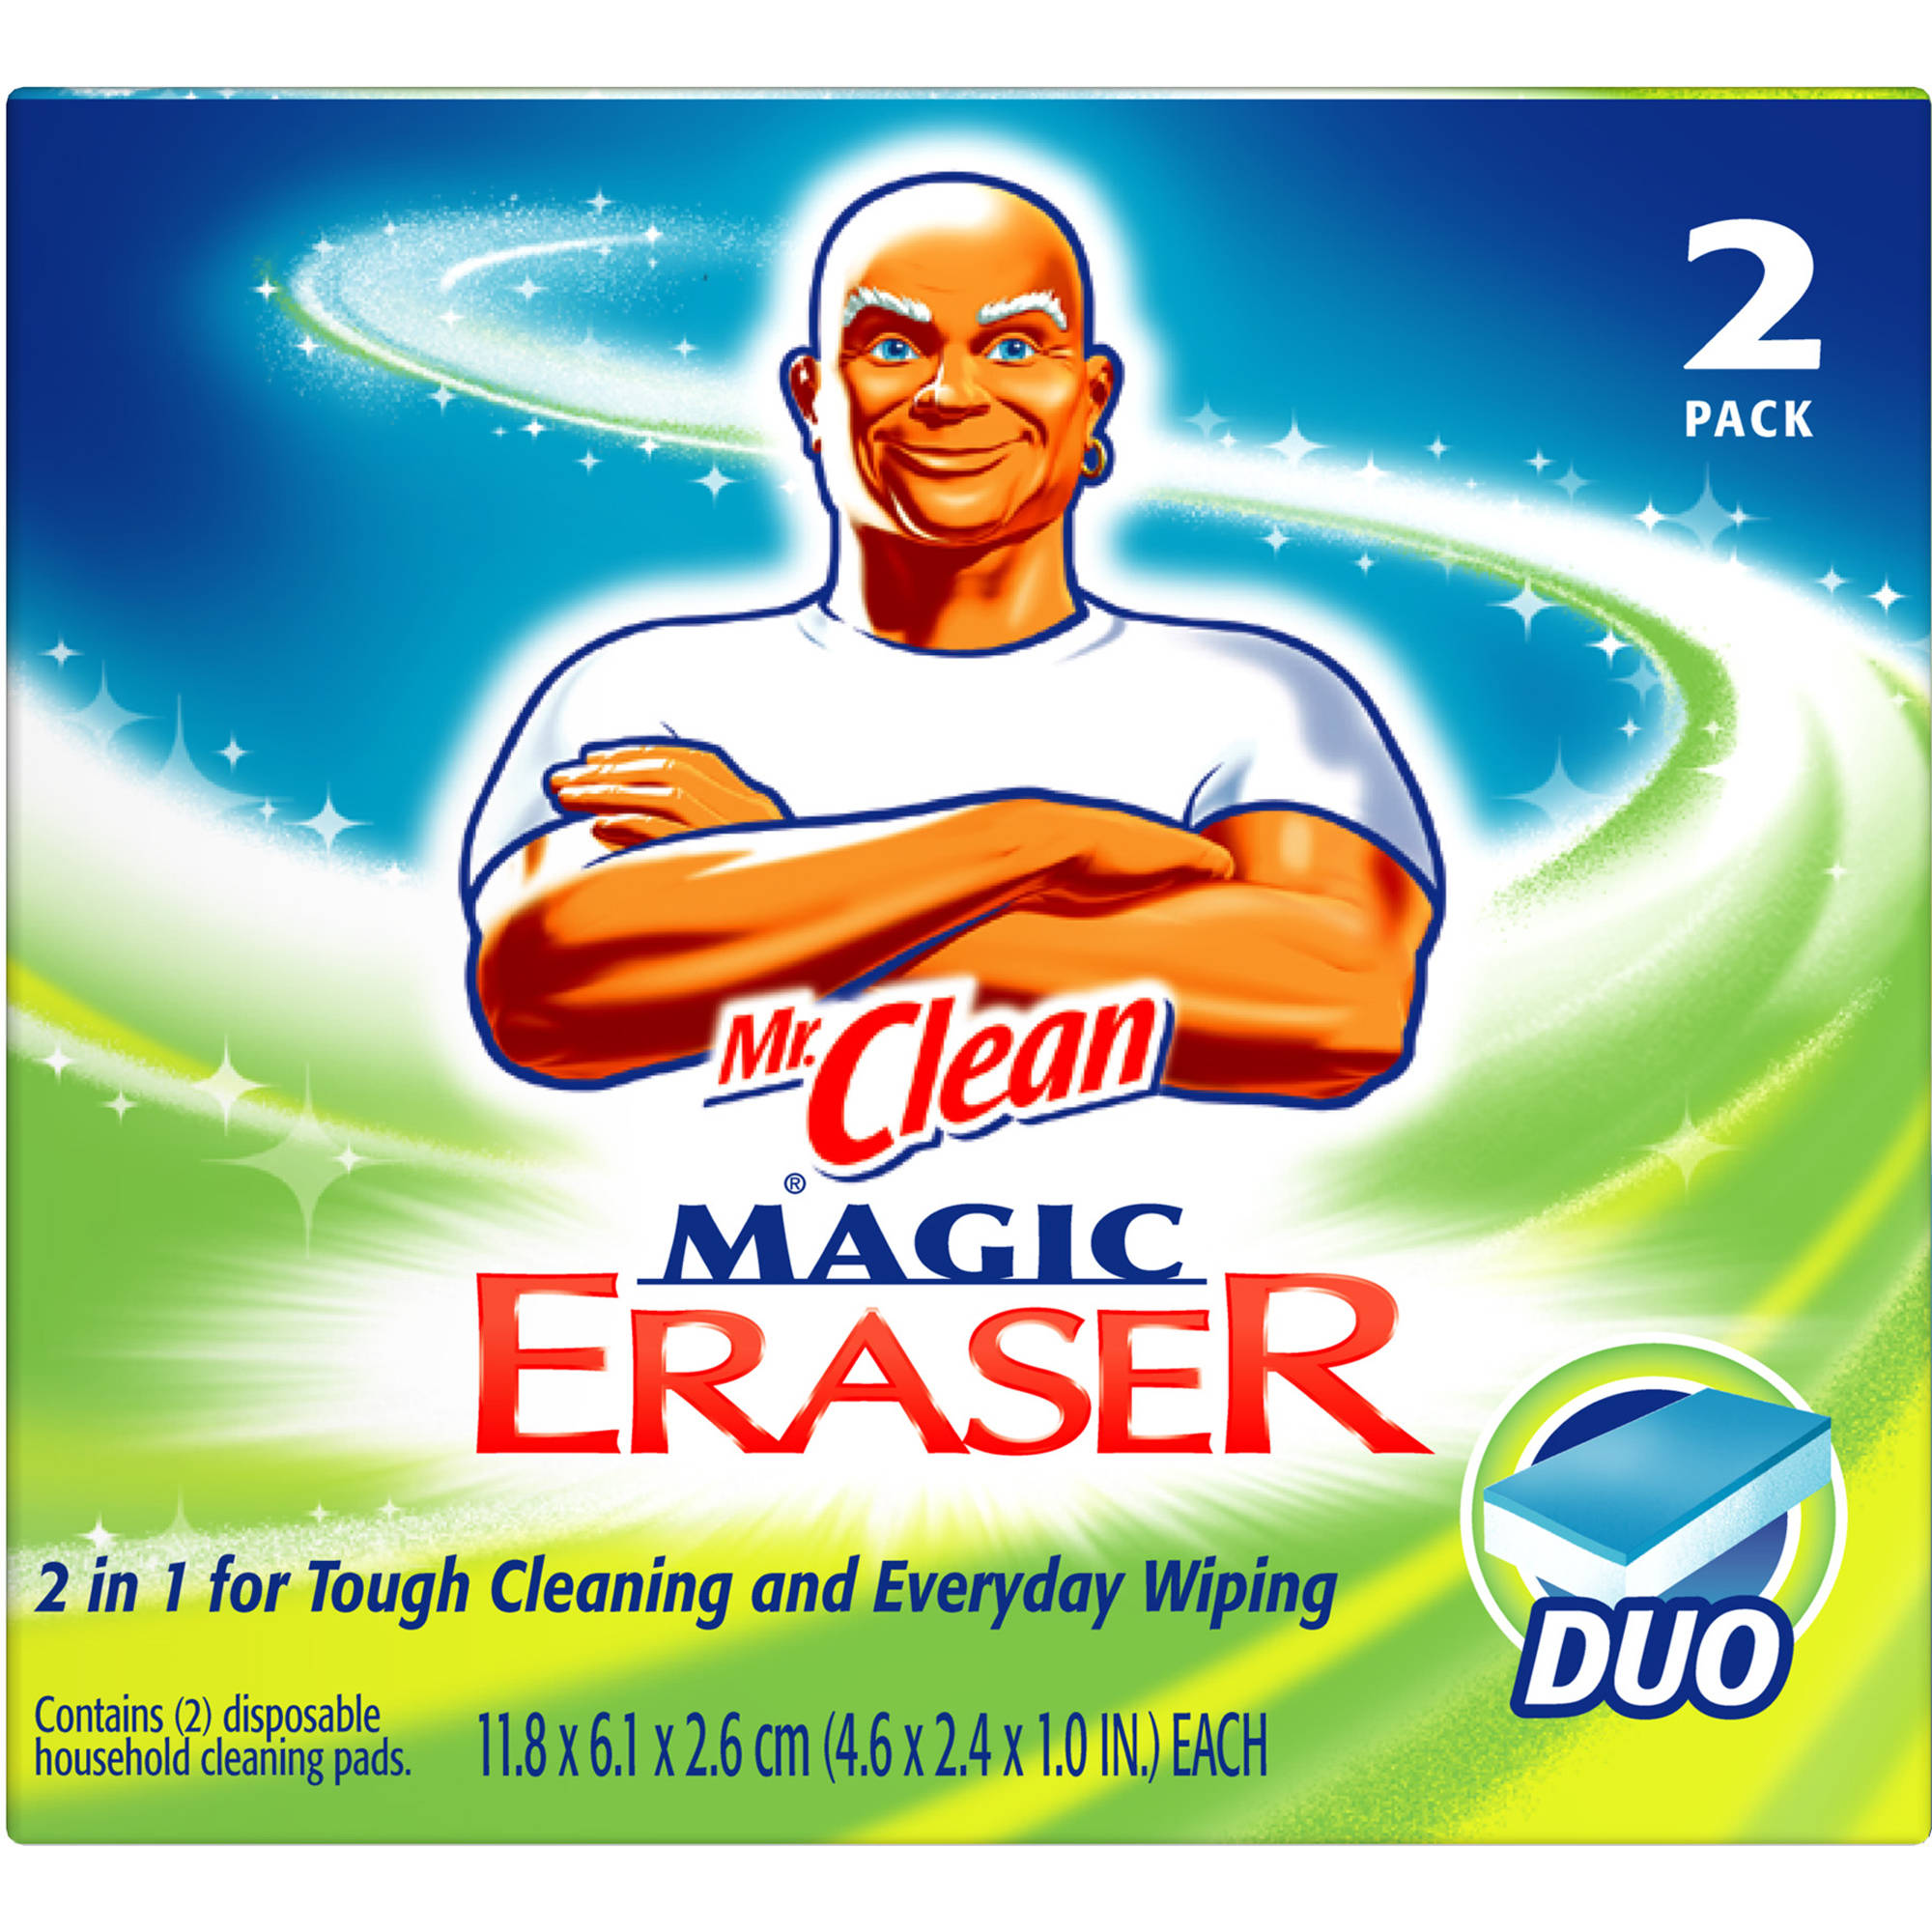 Mr. Clean Magic Eraser Duo Cleaning Pads, 2ct